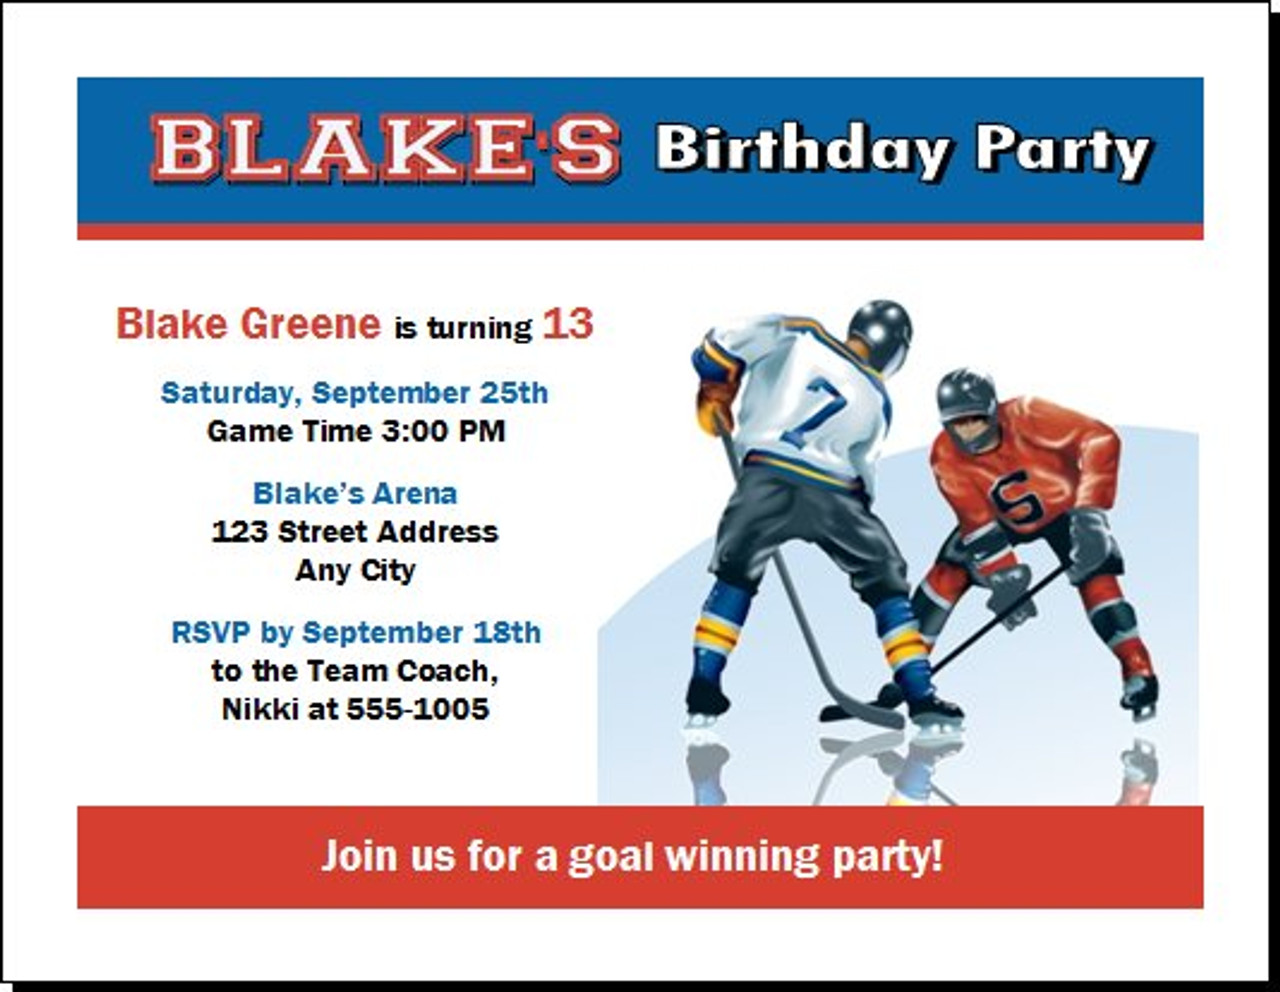 Players Birthday Party Invitation